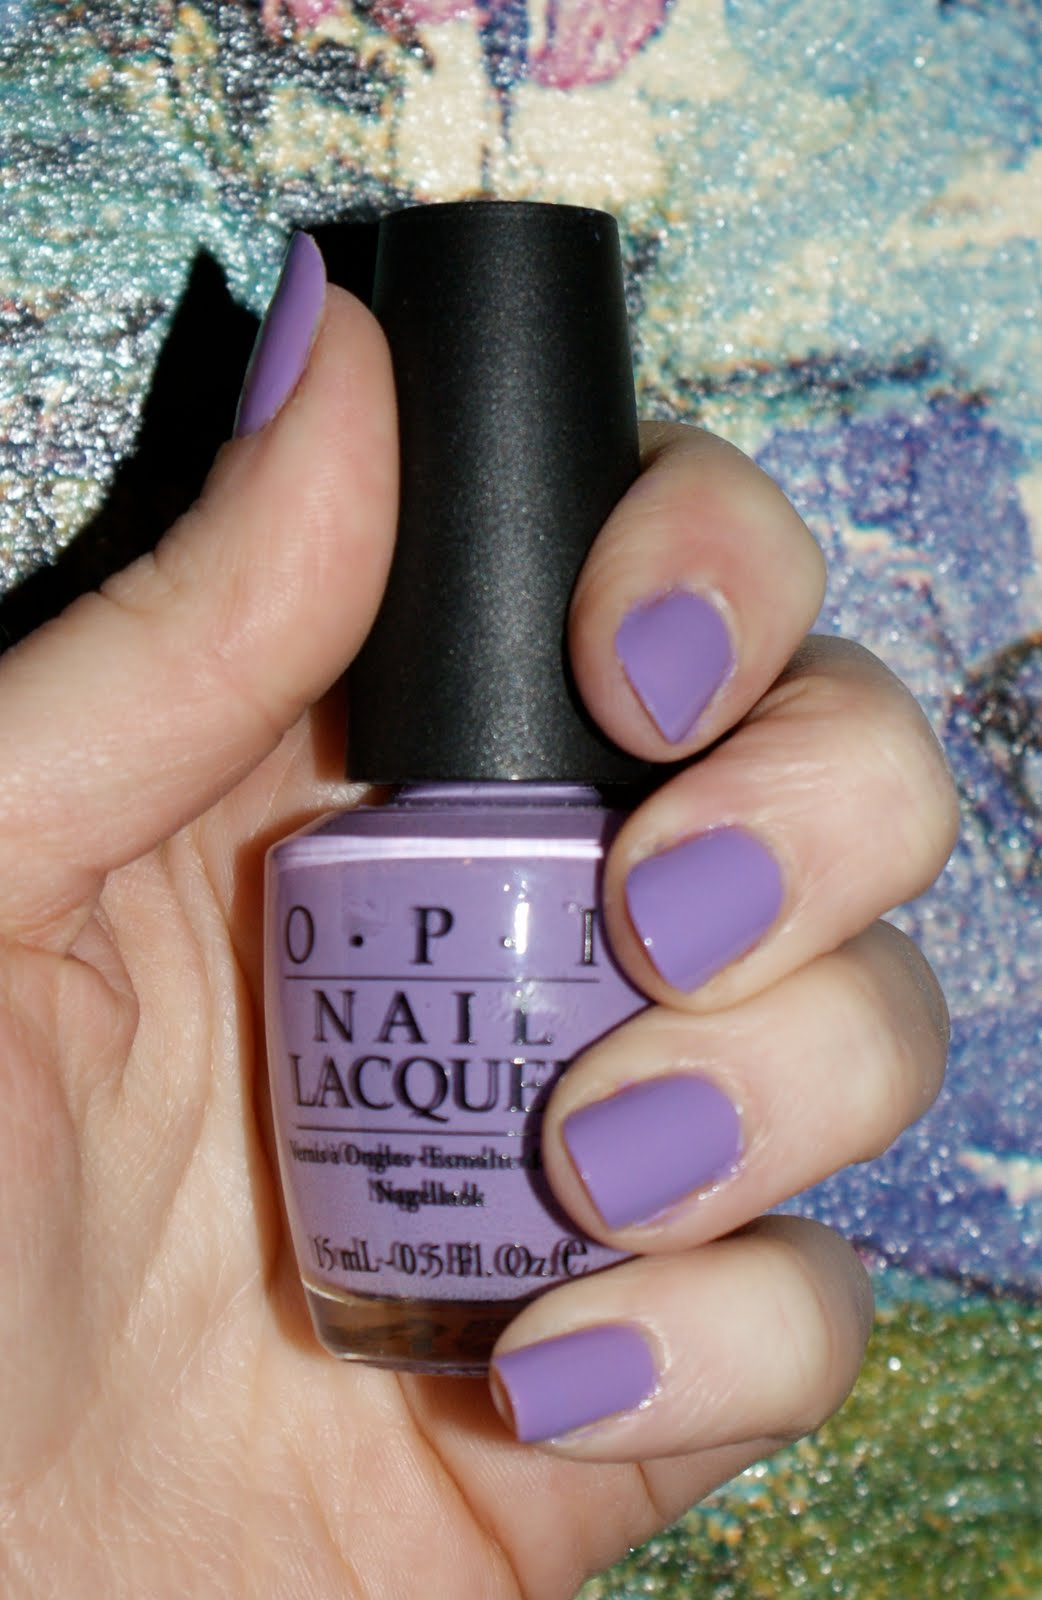 wonderful polish Stylish manicure purple manicure modern look manicure with decorations lilac shade Lilac nail polish decorated nails beautiful manicure amazing varnish